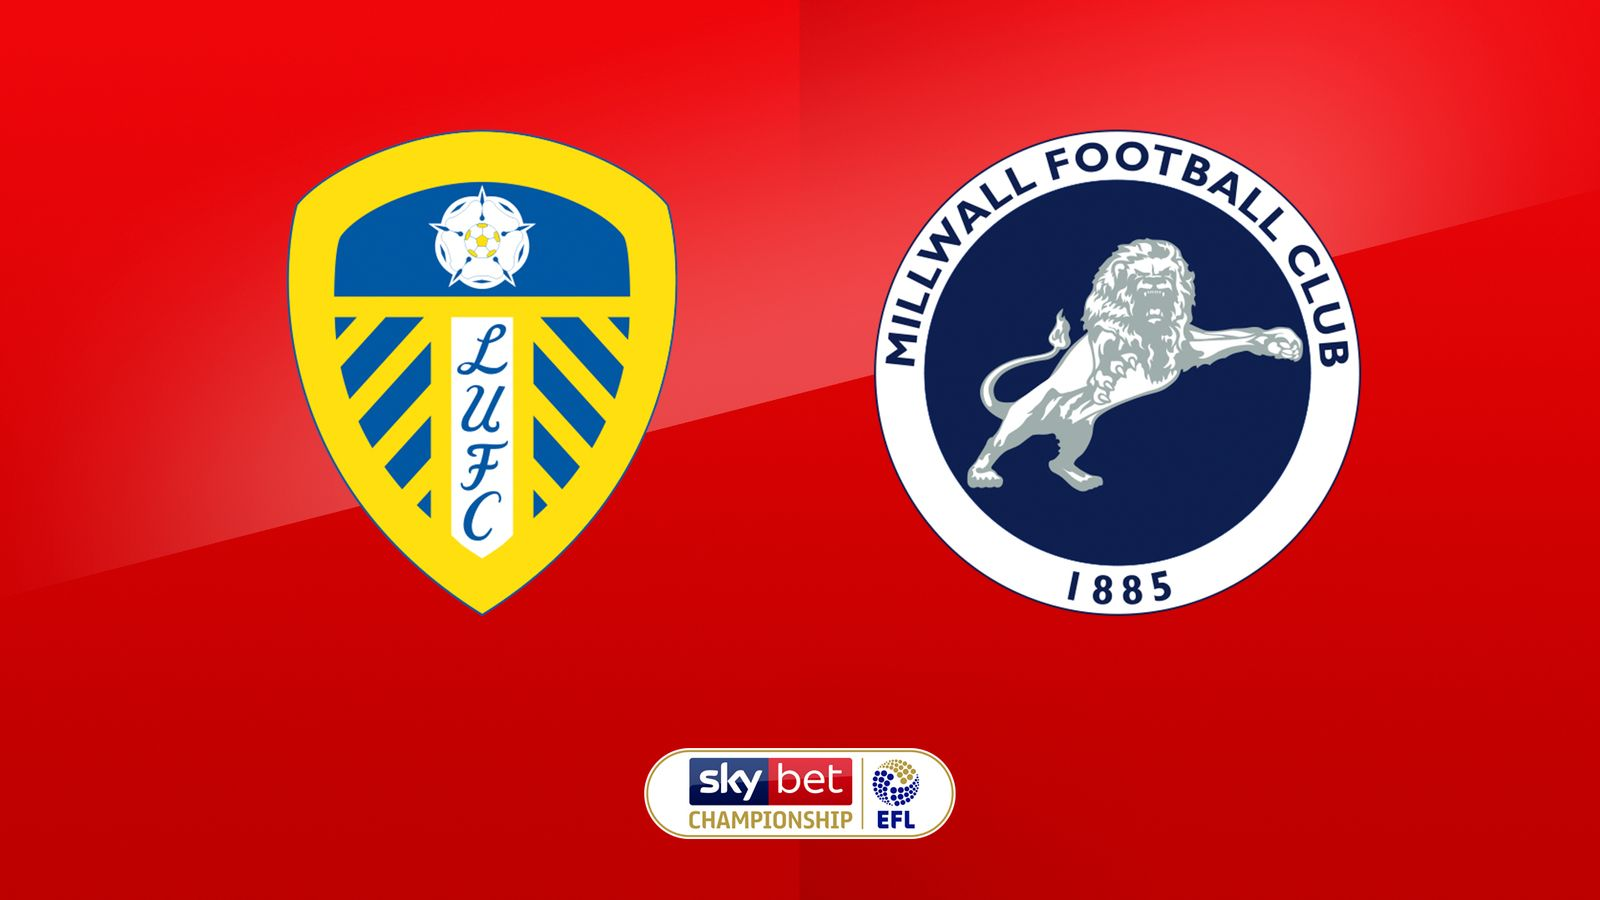 Leeds vs Millwall preview: Championship clash live on Sky Sports Football Red Button